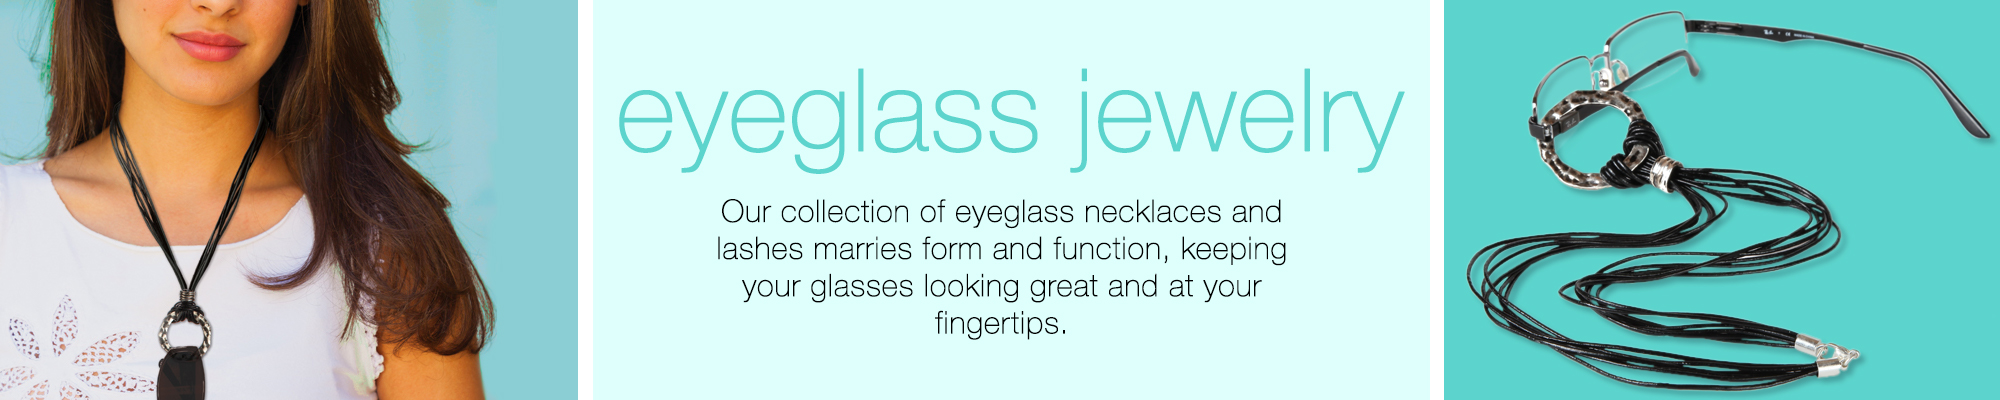 Eyeglass necklaces and leashes